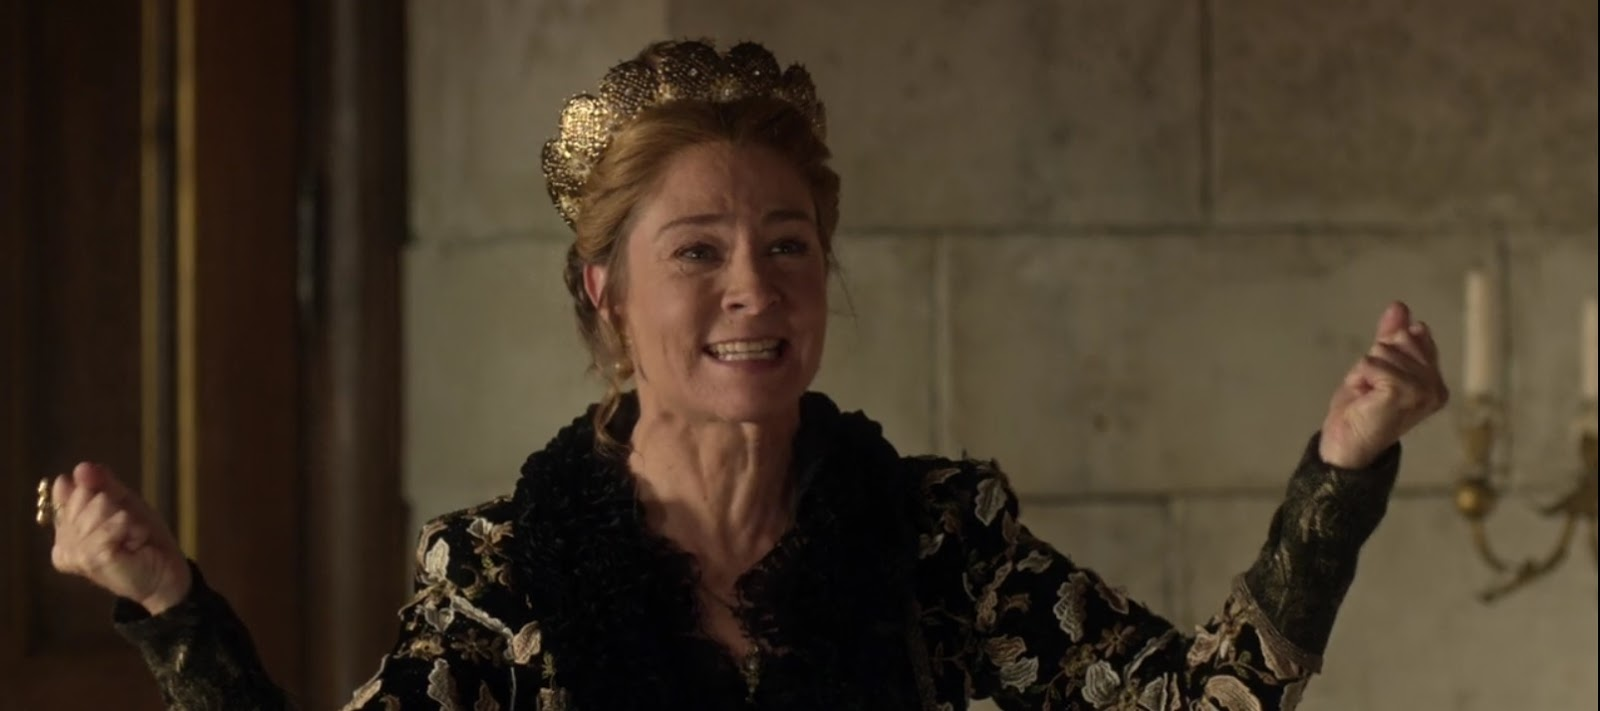 Catherine de Medici facts